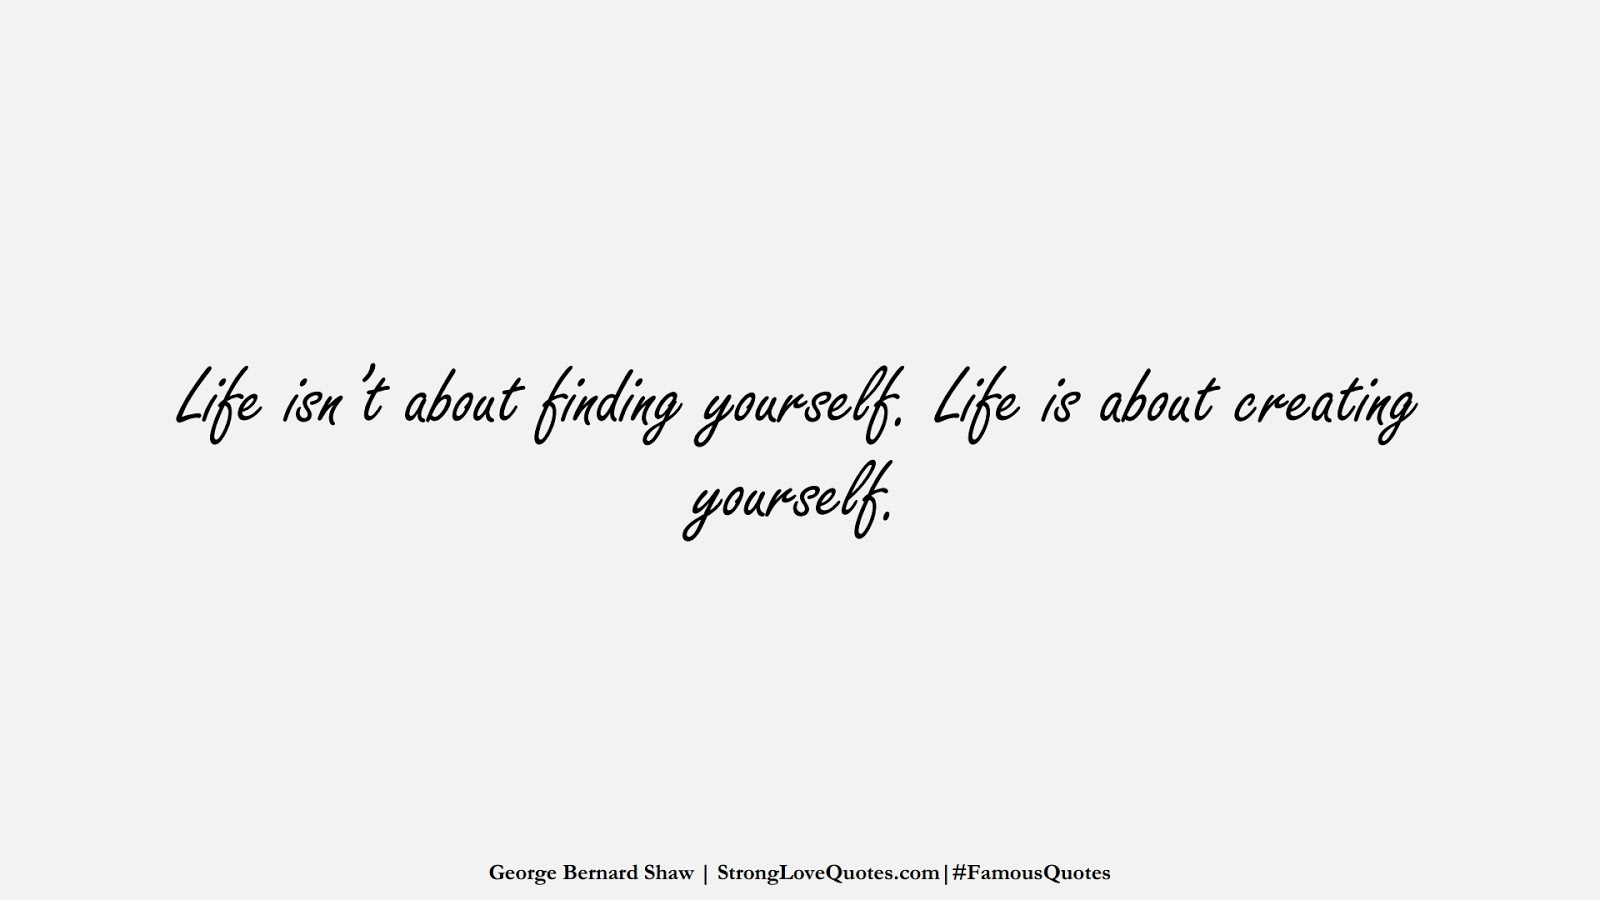 Life isn't about finding yourself. Life is about creating yourself. (George Bernard Shaw);  #FamousQuotes